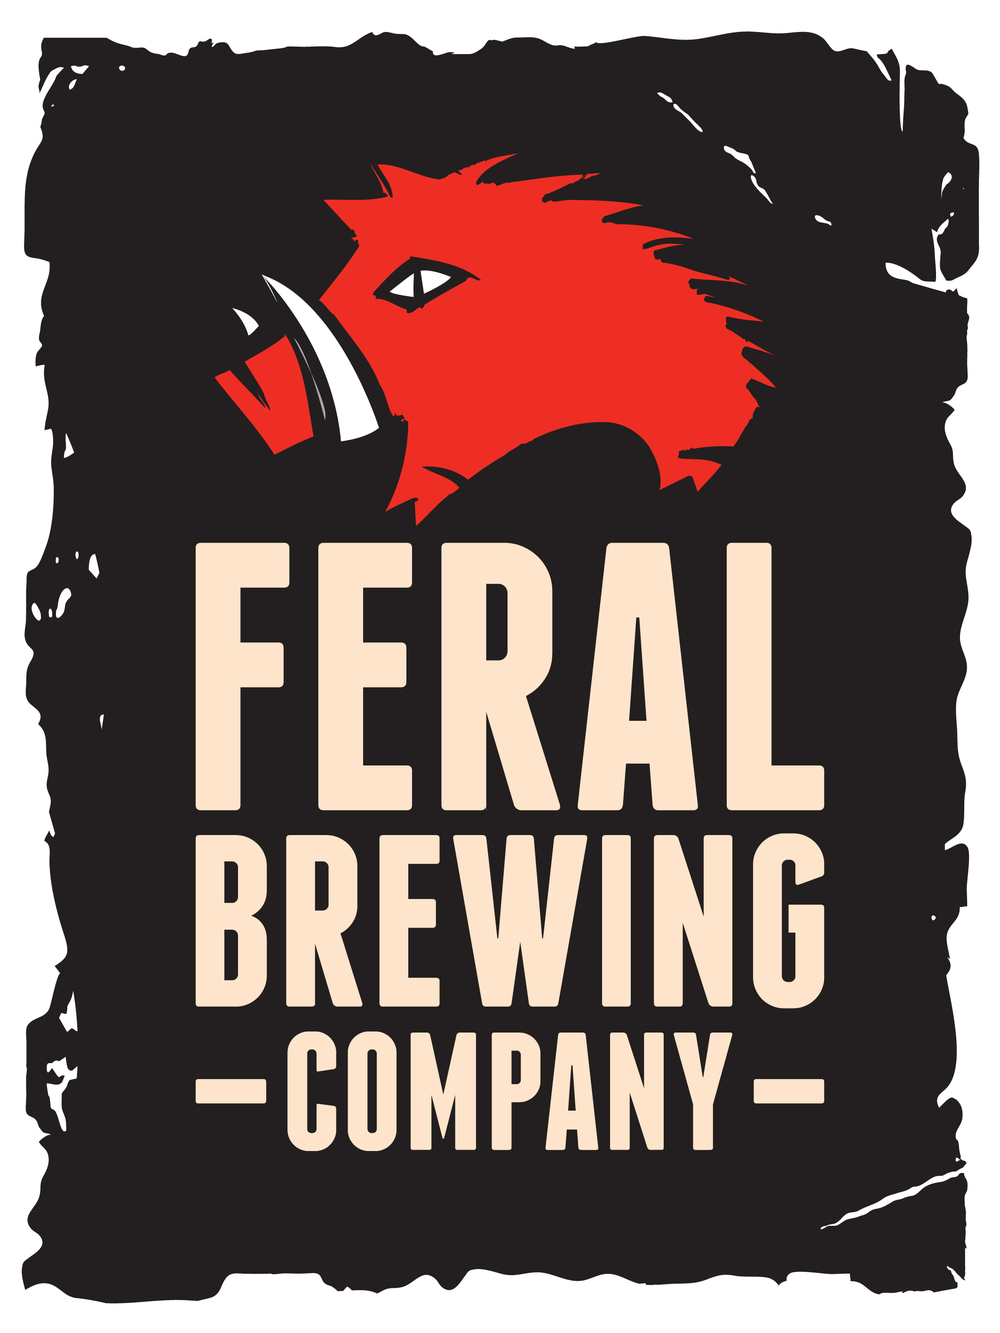 Good Afternoon Bridgees,   We have another craft beer tasting lined up for you this afternoon, our very own and highly awarded Feral Brewery from the Swan Valley here in Western Australia. Since we have been here at Old Bridge, we have seen Feral consistently produce exception craft beer, winning awards, such as Australia's number #1 beer for their Hop Hog, in the Hottest 100 3 YEARS running! and pushing the boundaries of what can be considered 'sessionable', such as their exceptional KarmaCitra, a toasty and Hoppy dark beer that is never not in my fridge. Come down and try these brews, and talk craft beer with the Feral and Old Bridge Team, Open will be..... Hop Hog Pale Ale: Exploding with citrusy flavours and hop aromas , rounded with a solid malt back bone. A farmload of American hops makes Hop Hog uniquely Feral and just a little fruity! Karma Citra India Black Ale: An IPA that has been souped-up, American citra hops have been combined with dark malts to produce a smooth brew with chocolate and toffee undertones and a big tropical and citrus aroma. Jay's favourite, you have to try! Sly Fox Summer Ale: This sneaky little beer is light on its feet but still packs a punch of flavour. Lightly filtered to get a vibrant hoppy aroma with a clear bitterness that pairs with a hot, summers day. As always, In-store, at Old Bridge Cellars in North Fremantle, from 4.00pm - 7.00pm Today, Thursday the 17th of December 2015. See you all down here, Jay and the Old Bridge Team